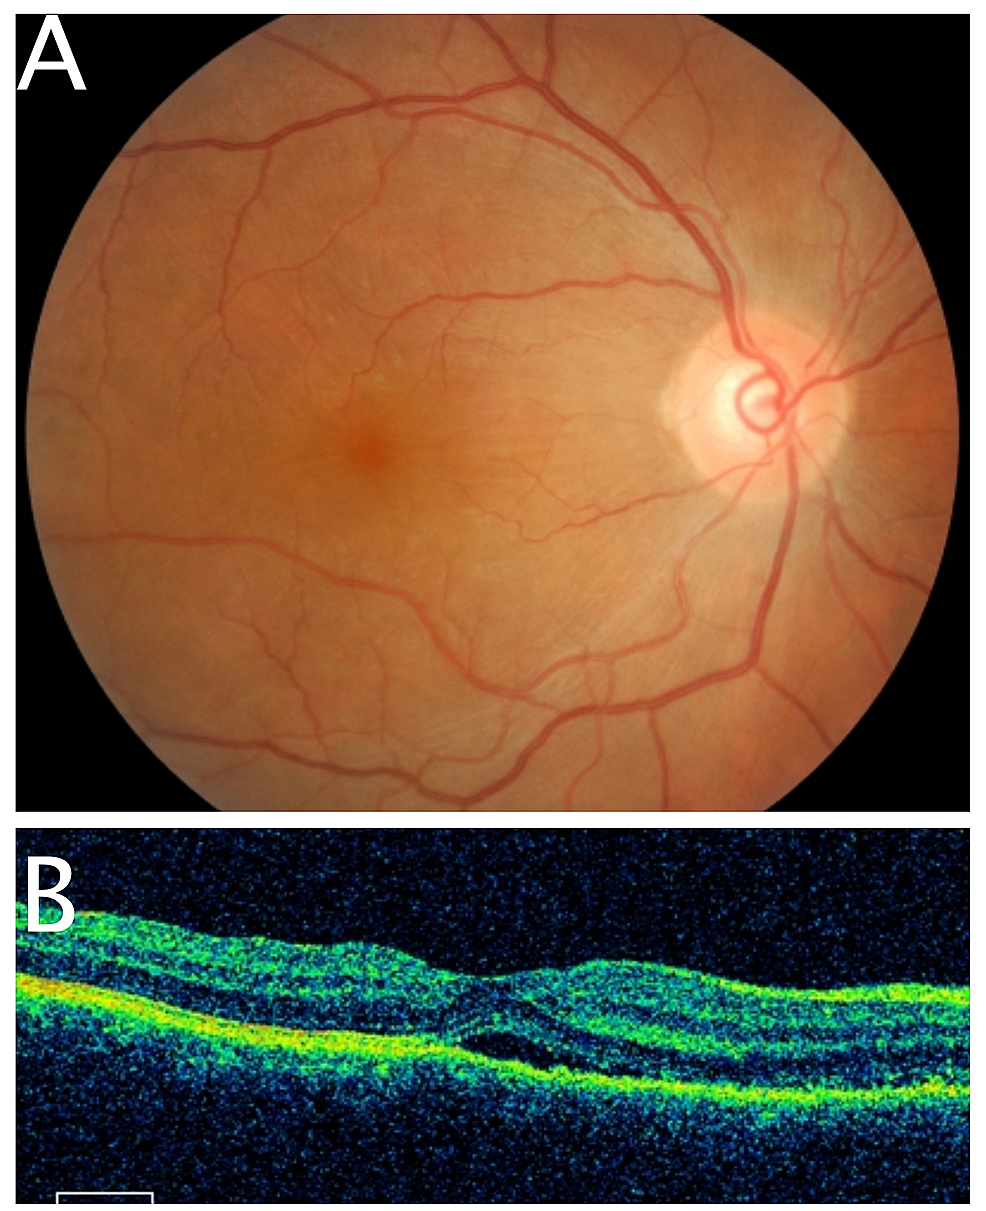 Fundus-photography-and-optical-coherence-tomography-of-right-eye